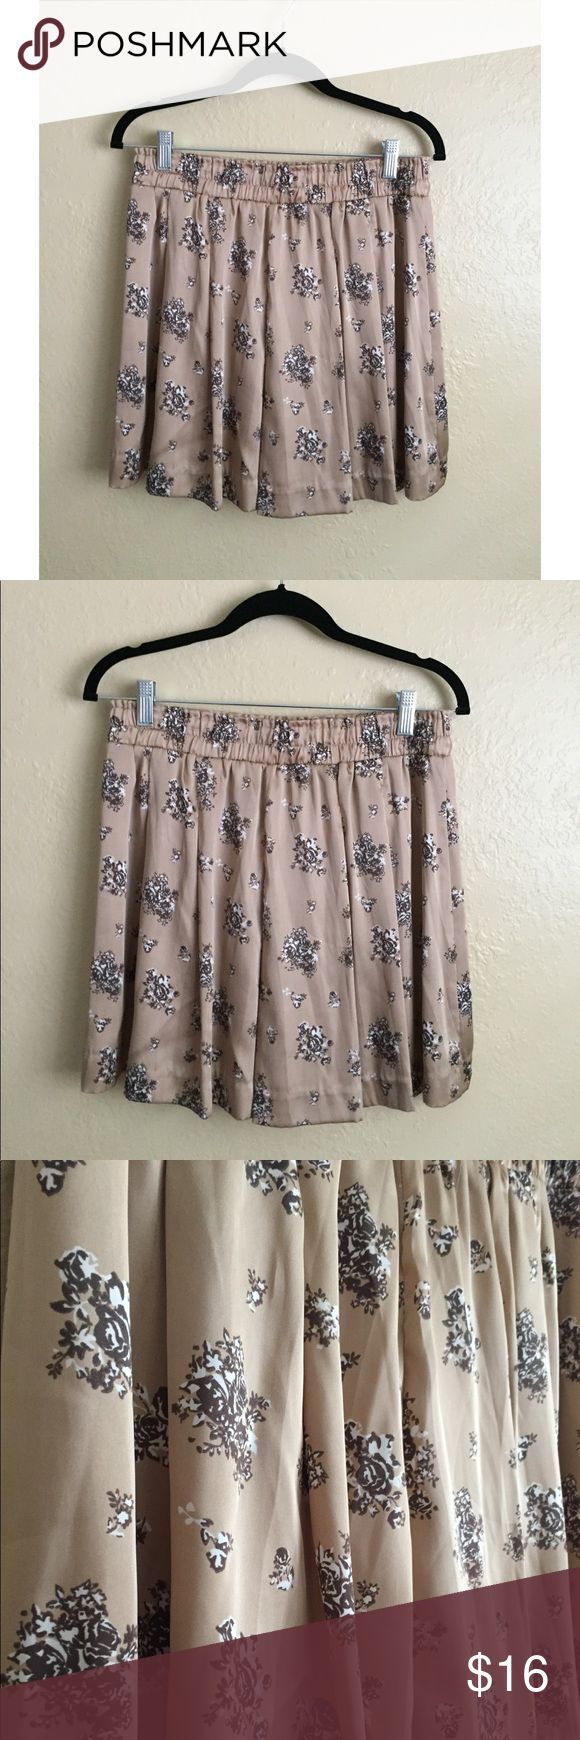 """NWOT Satin Floral Shorts 🌸 NWOT and never worn. UNIQLO shorts in a taupe satin and all over floral print. Length is 17"""" from waist to hem. Fit is high waisted with oversized elastic. True to size. For all other measurements please refer to brand size chart.   ✅ Reasonable offers considered. Please do not ask 'lowest' via comments  ✅ Bundle Discount  🚫 Cannot model item  🚫 No trades  🚫 Low ball offers will be declined Uniqlo Shorts"""